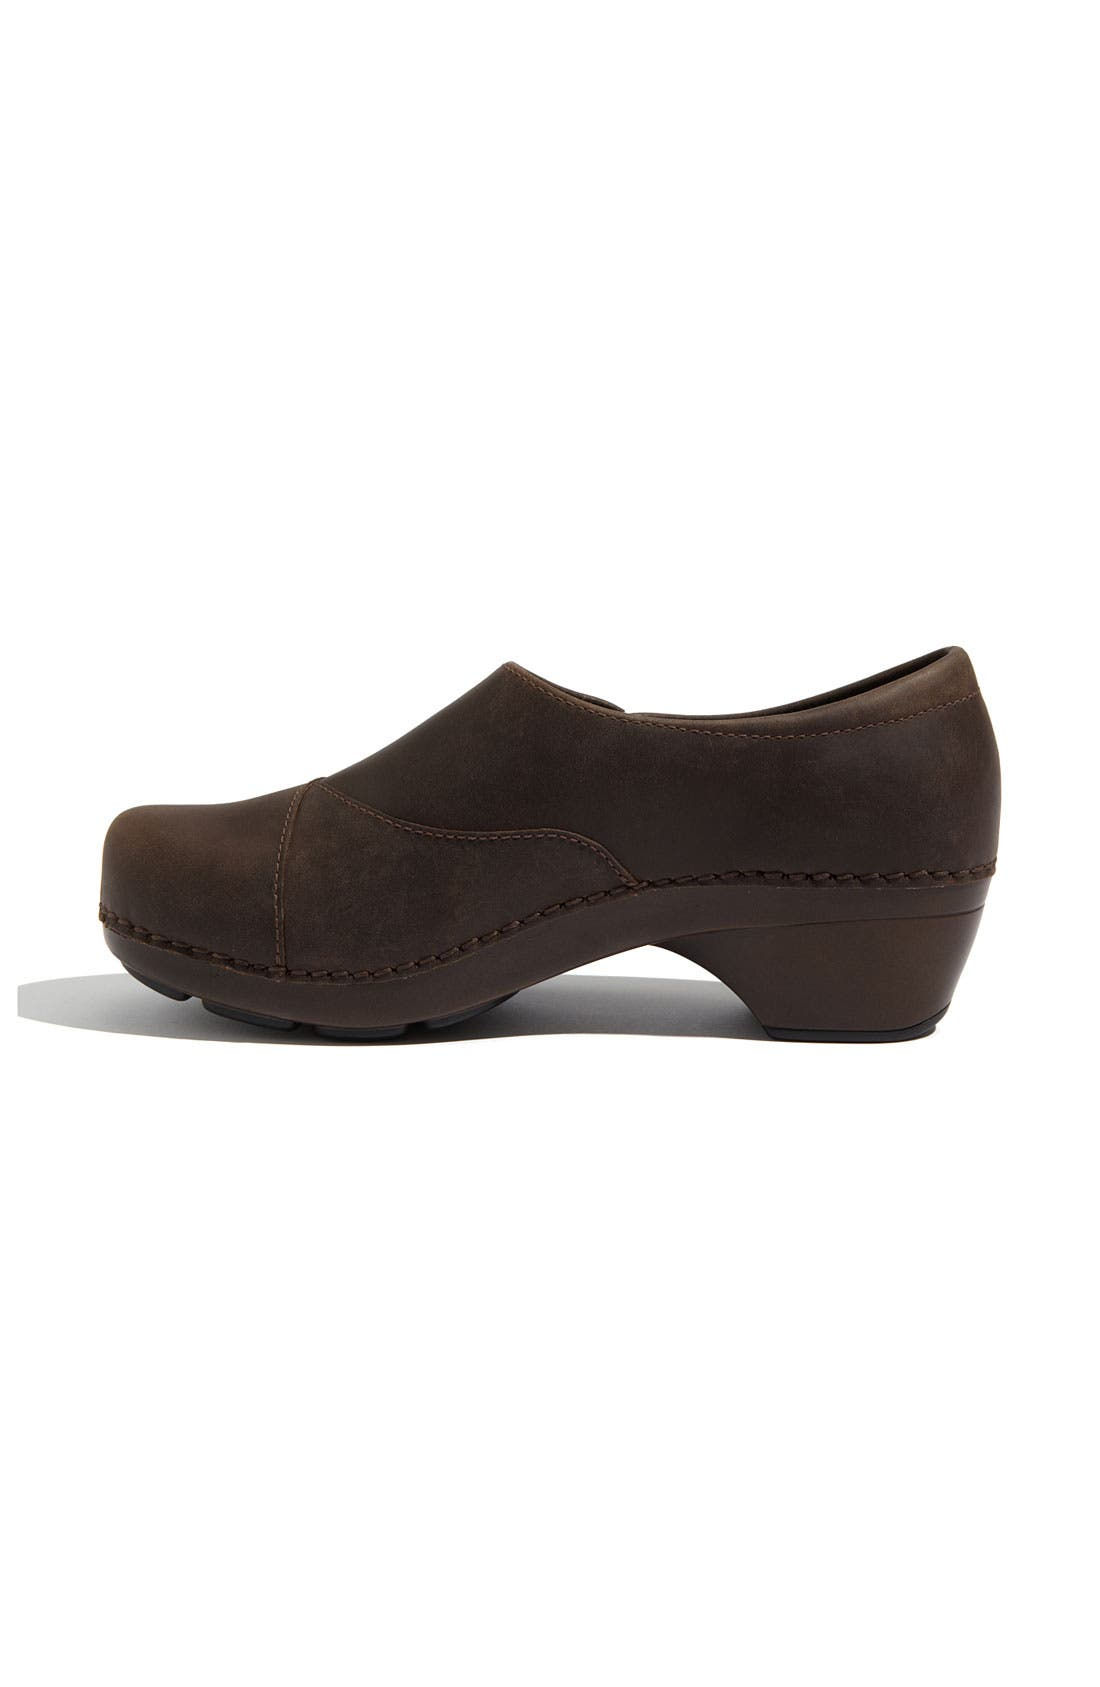 Alternate Image 2  - Dansko 'Stacie' Clog